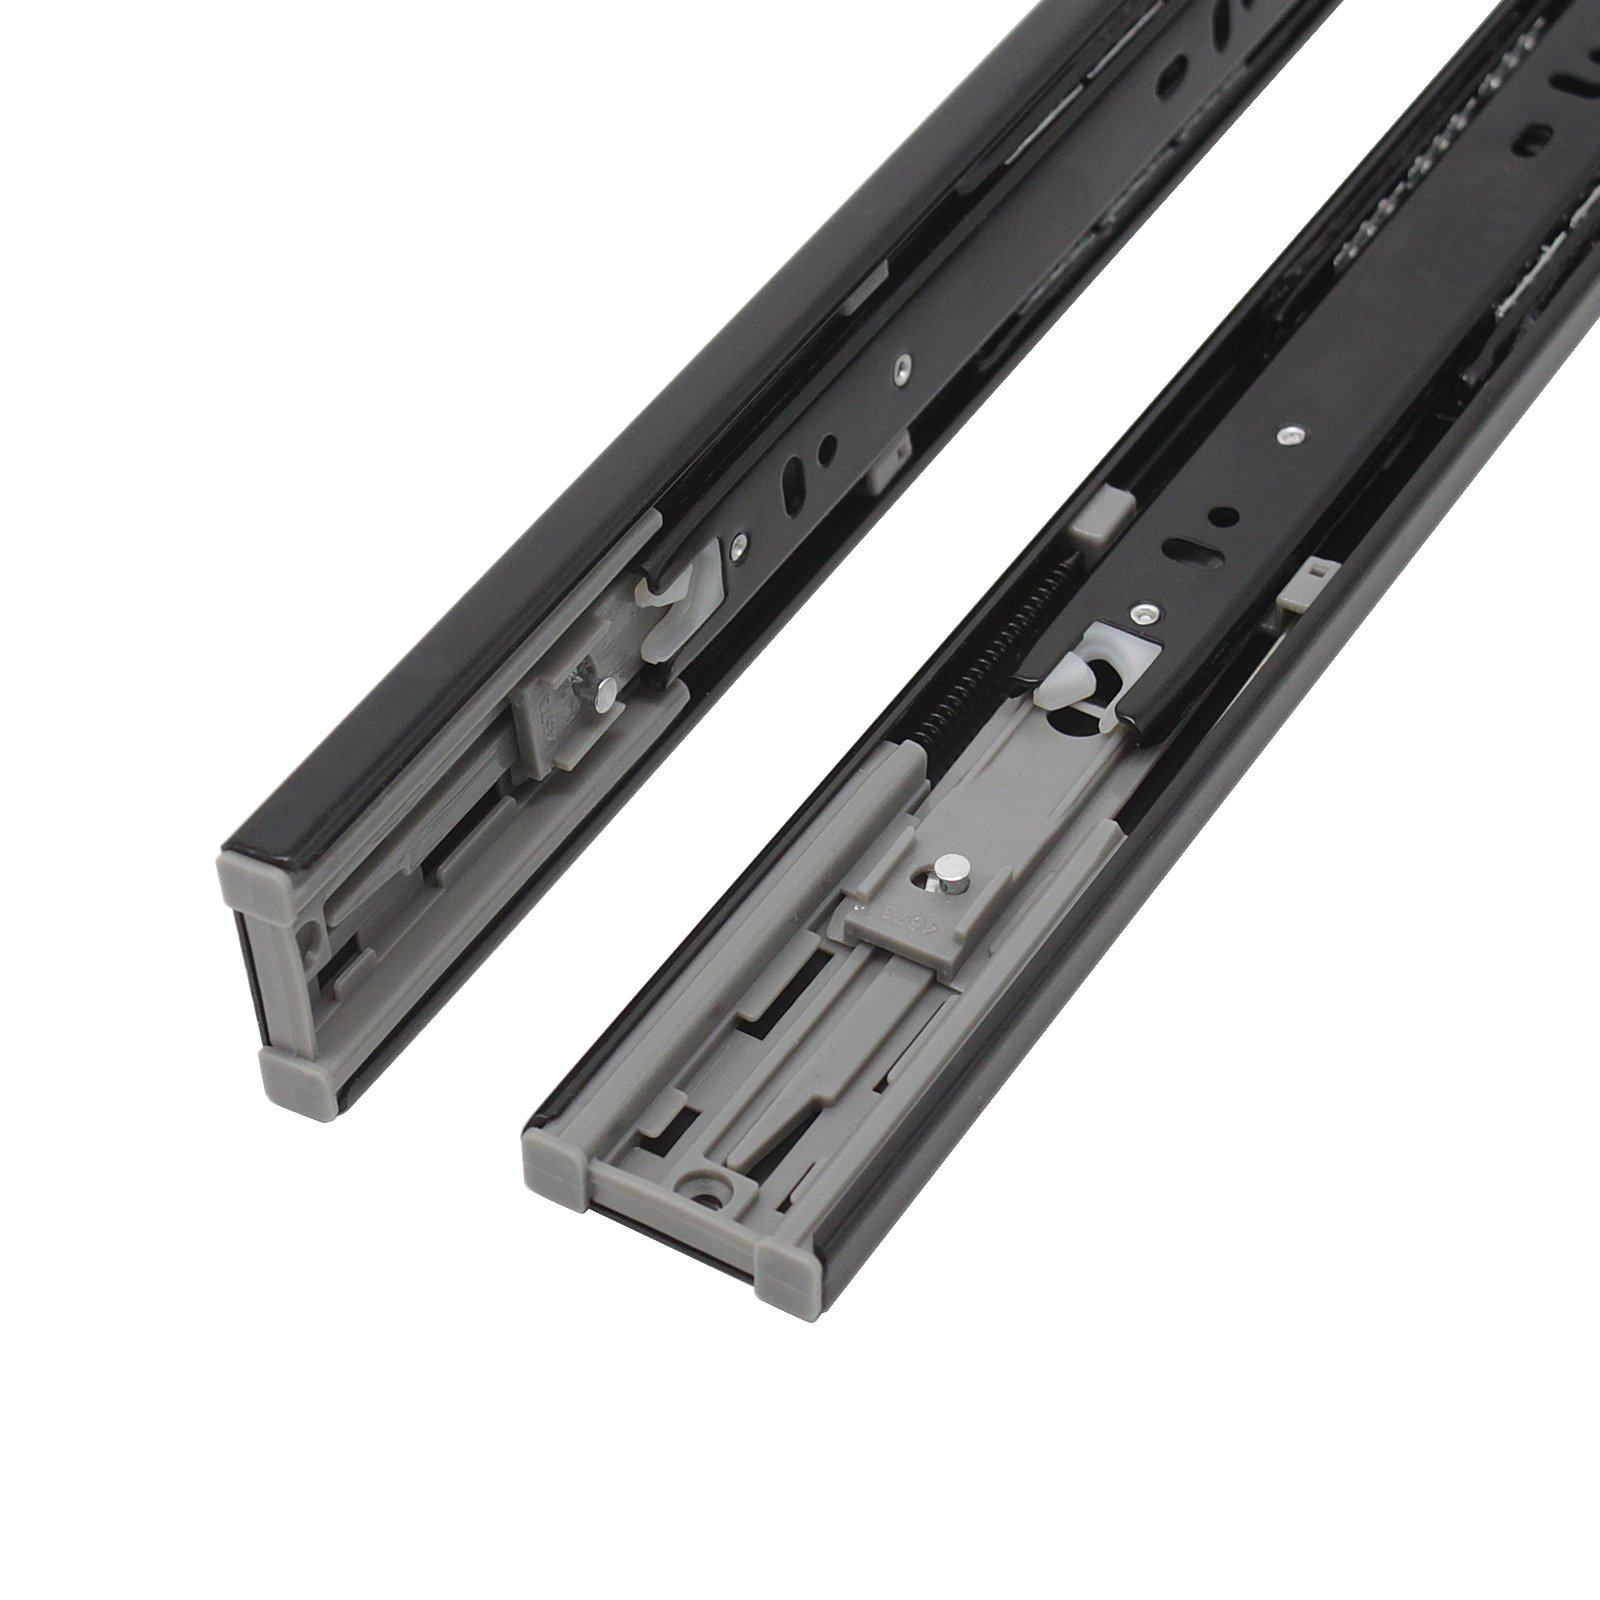 Probrico 10 Pair of 12 Inch Hardware Ball Bearing Side Mount Drawer Slides, Full Extension, Available in 12'',14'',16'',18'',20'',22'', 24'' Lengths by Probrico (Image #2)